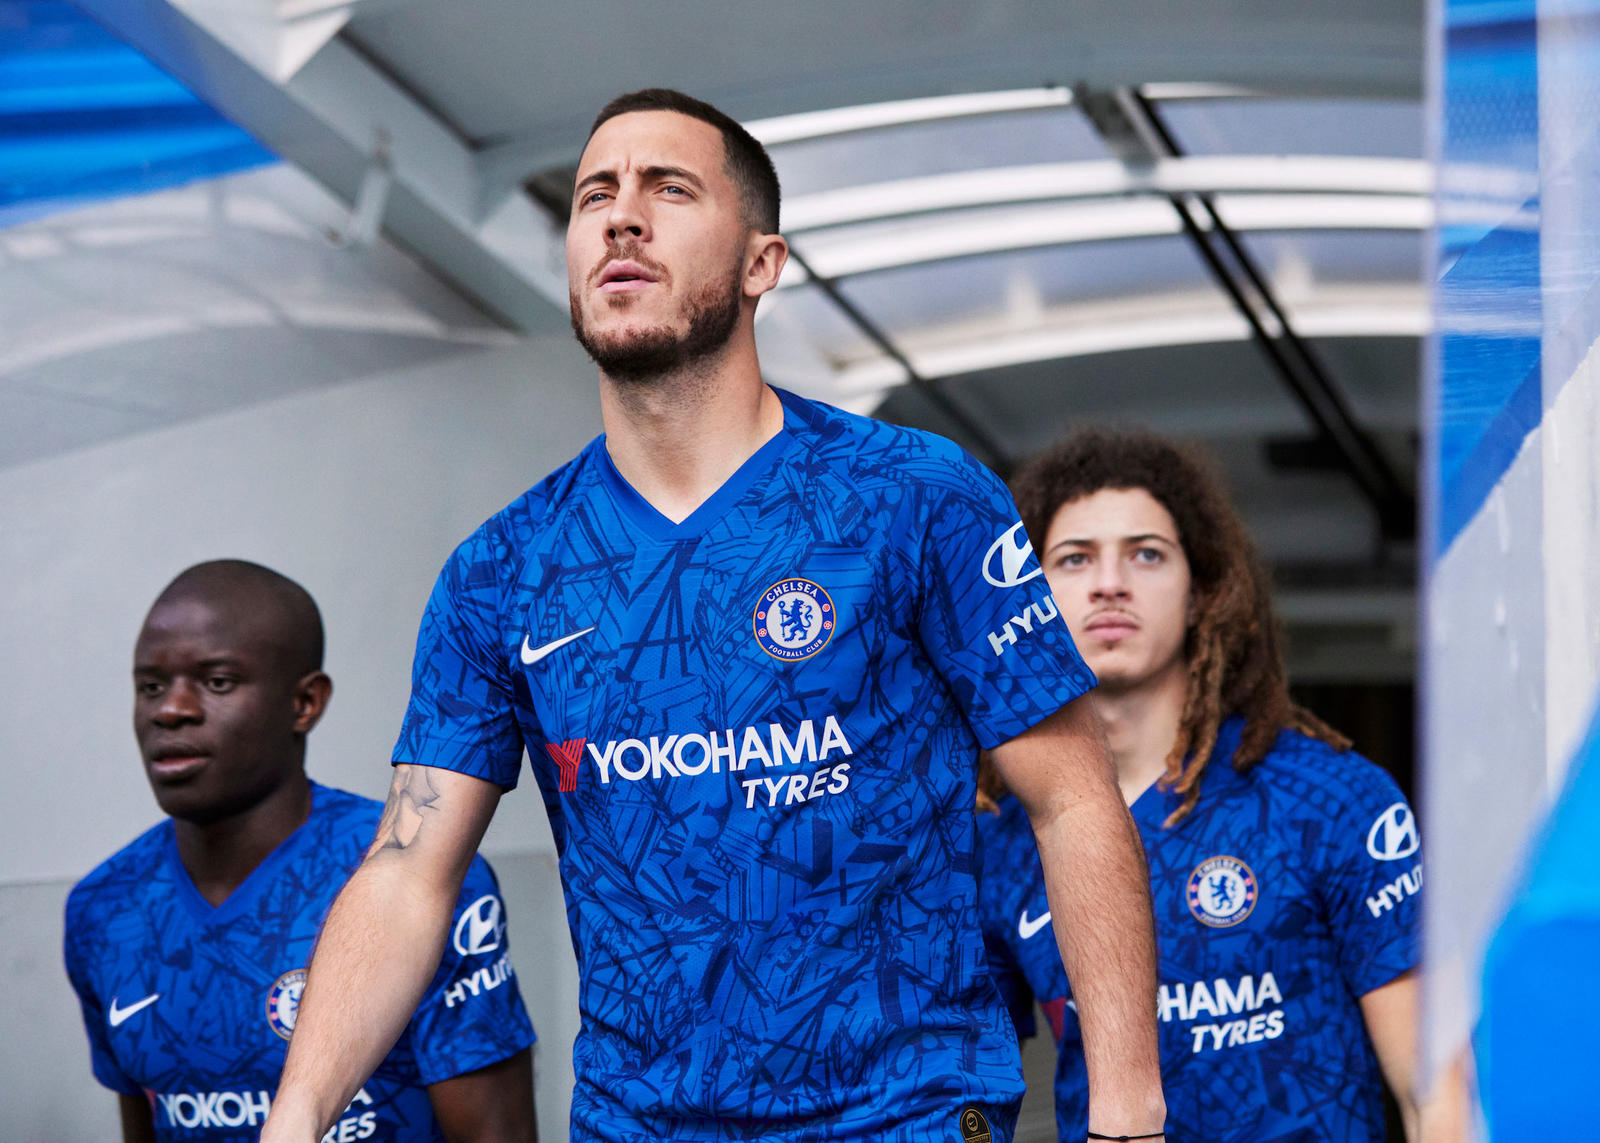 285b4039231 Chelsea FC Home Kit 2019-20 - Nike News